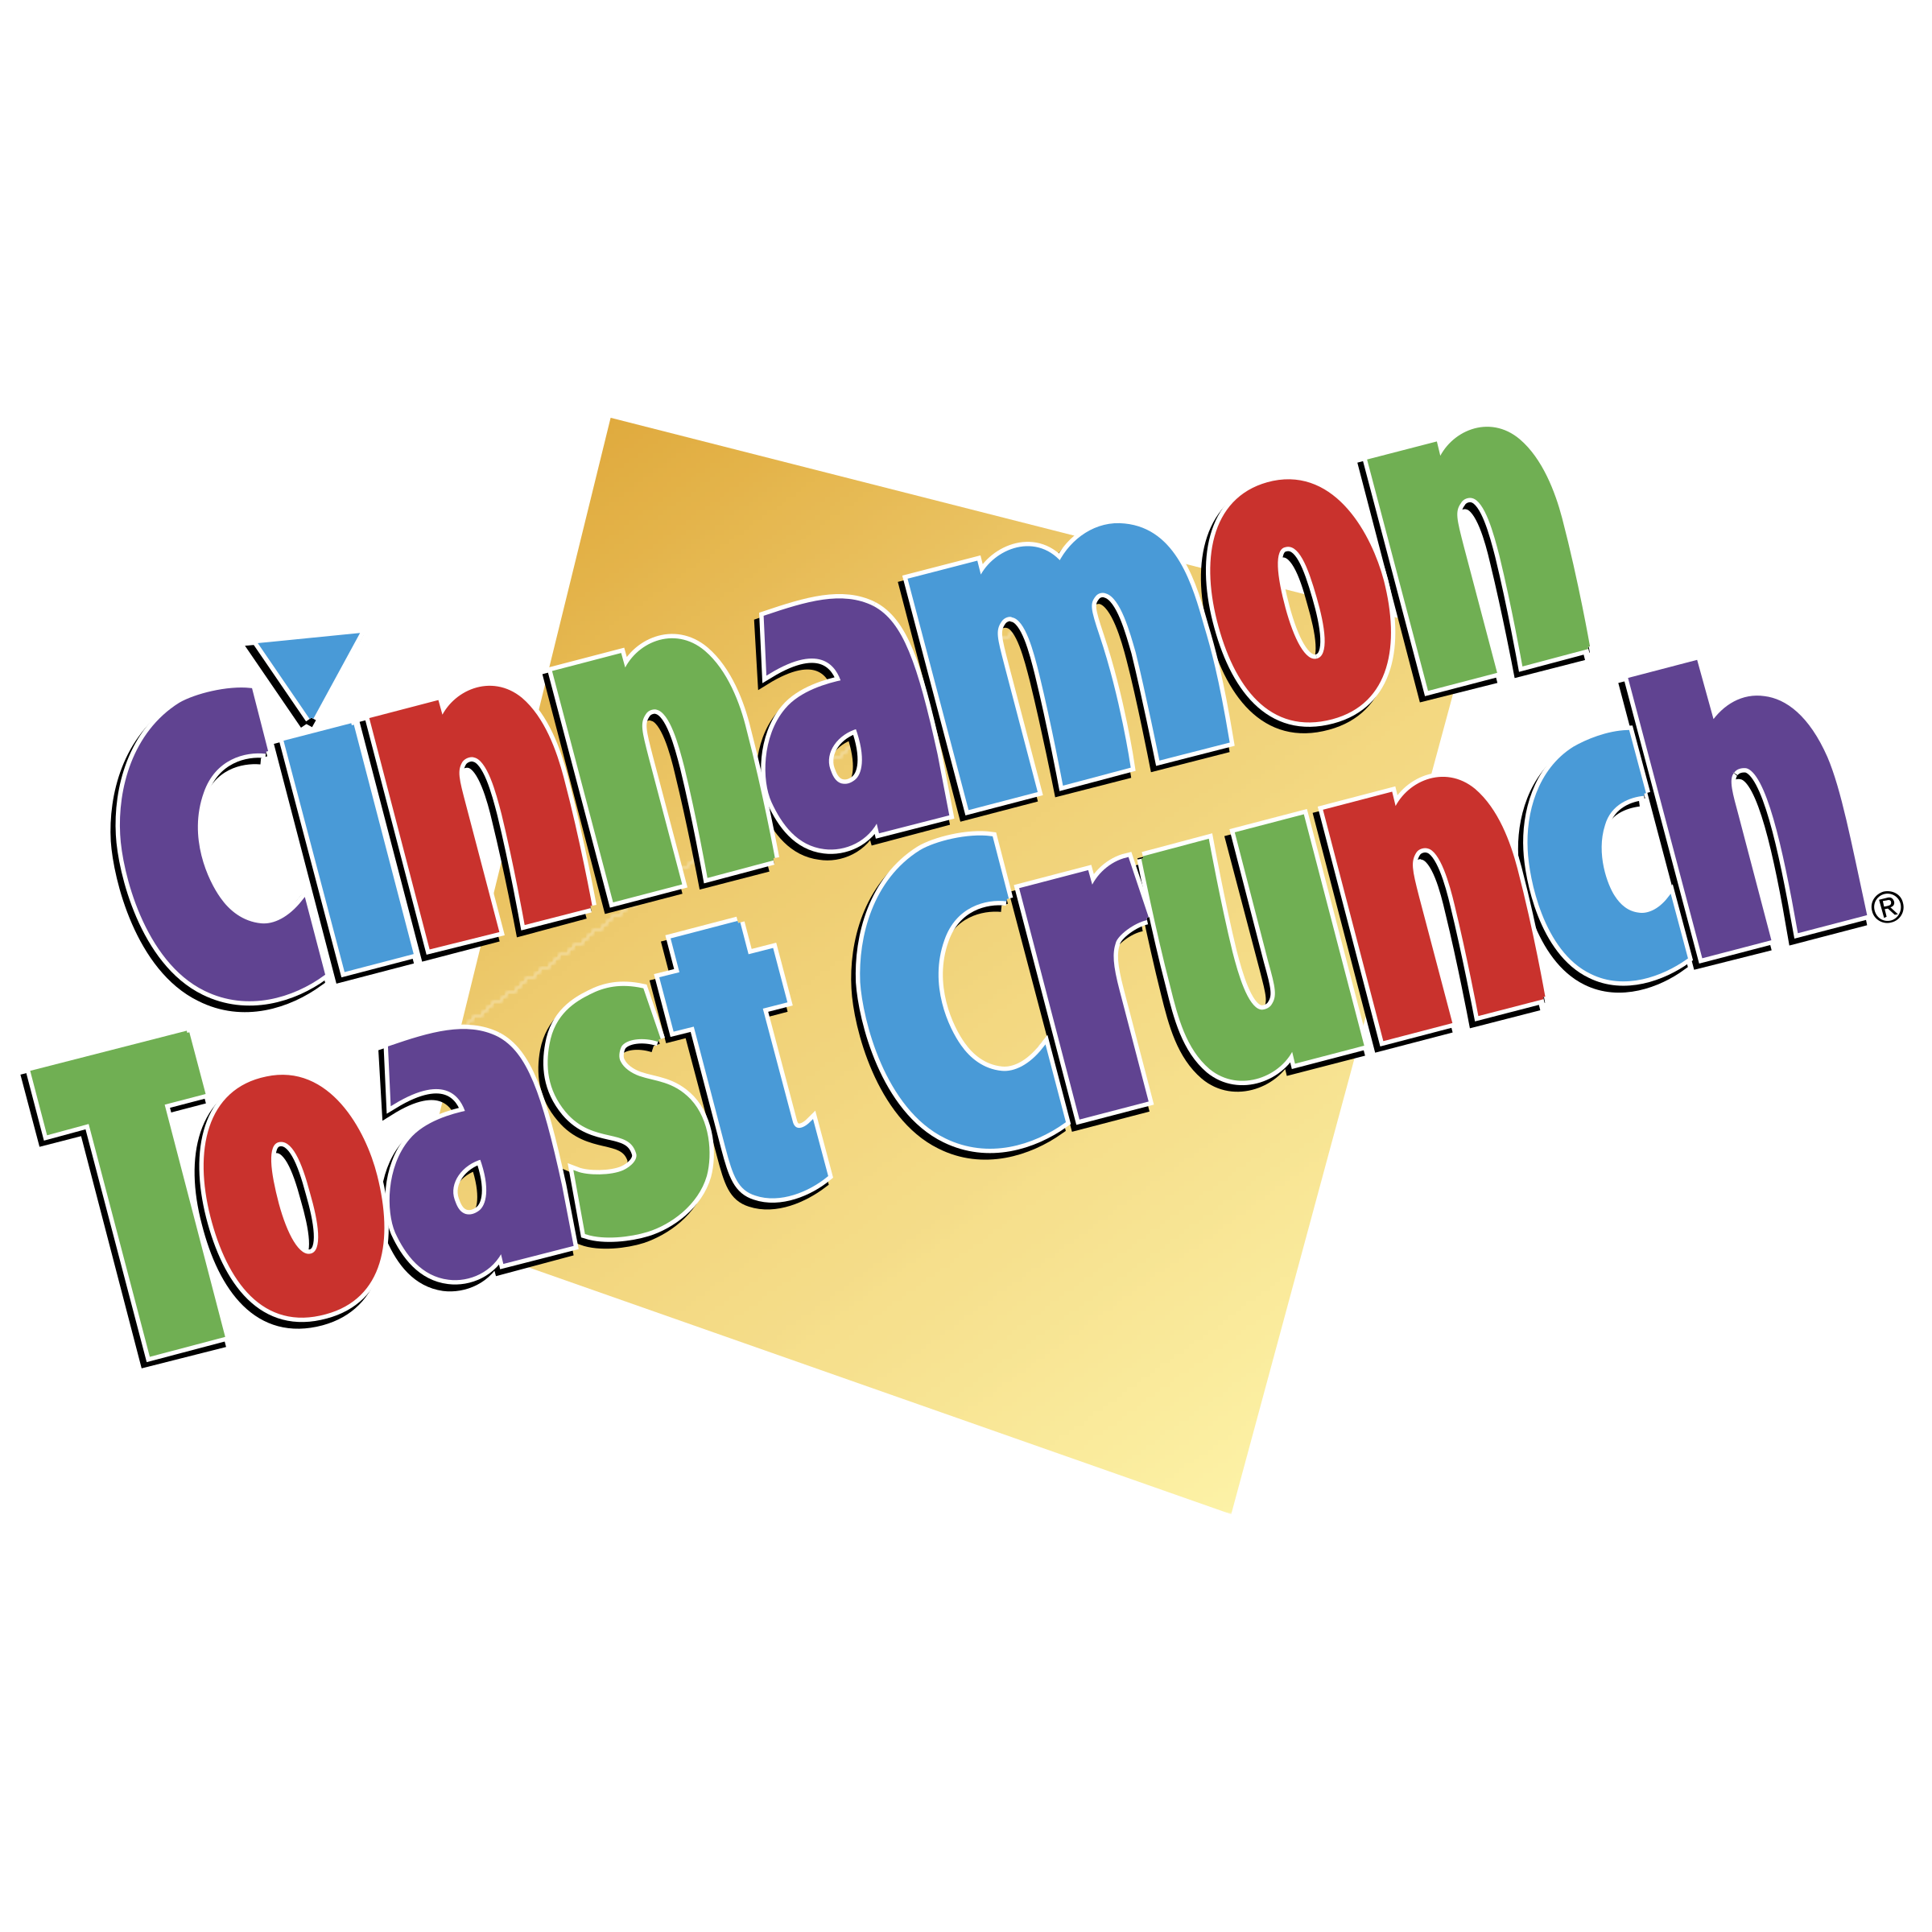 Cinnamon Toast Crunch Logo PNG Transparent & SVG Vector.